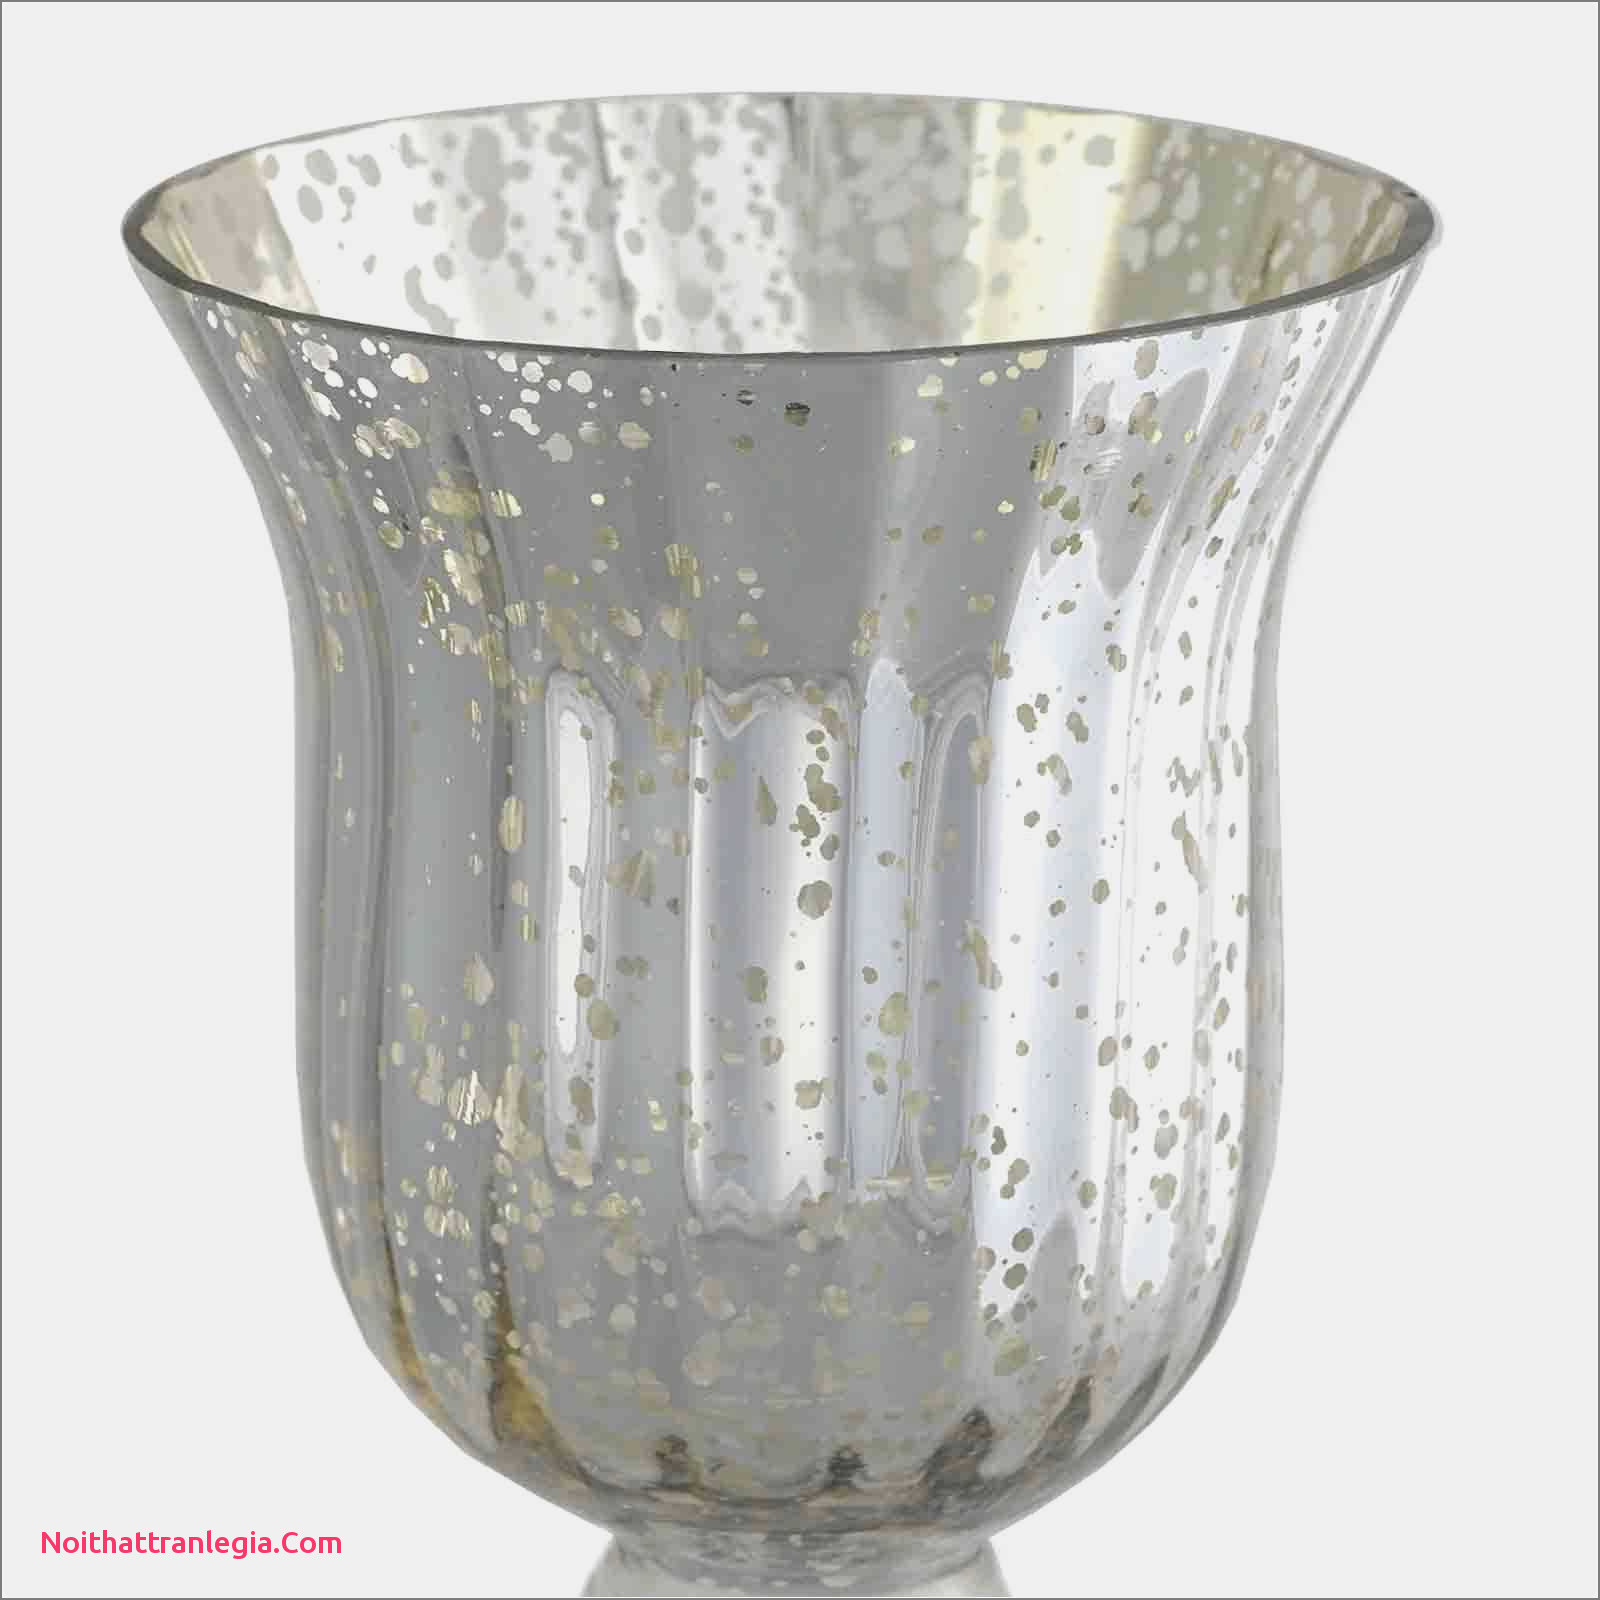 Small Silver Flower Vases Of 20 Wedding Vases Noithattranlegia Vases Design within Wedding Guest Gift Ideas Inspirational Candles for Wedding Favors Superb Pe S5h Vases Candle Vase I